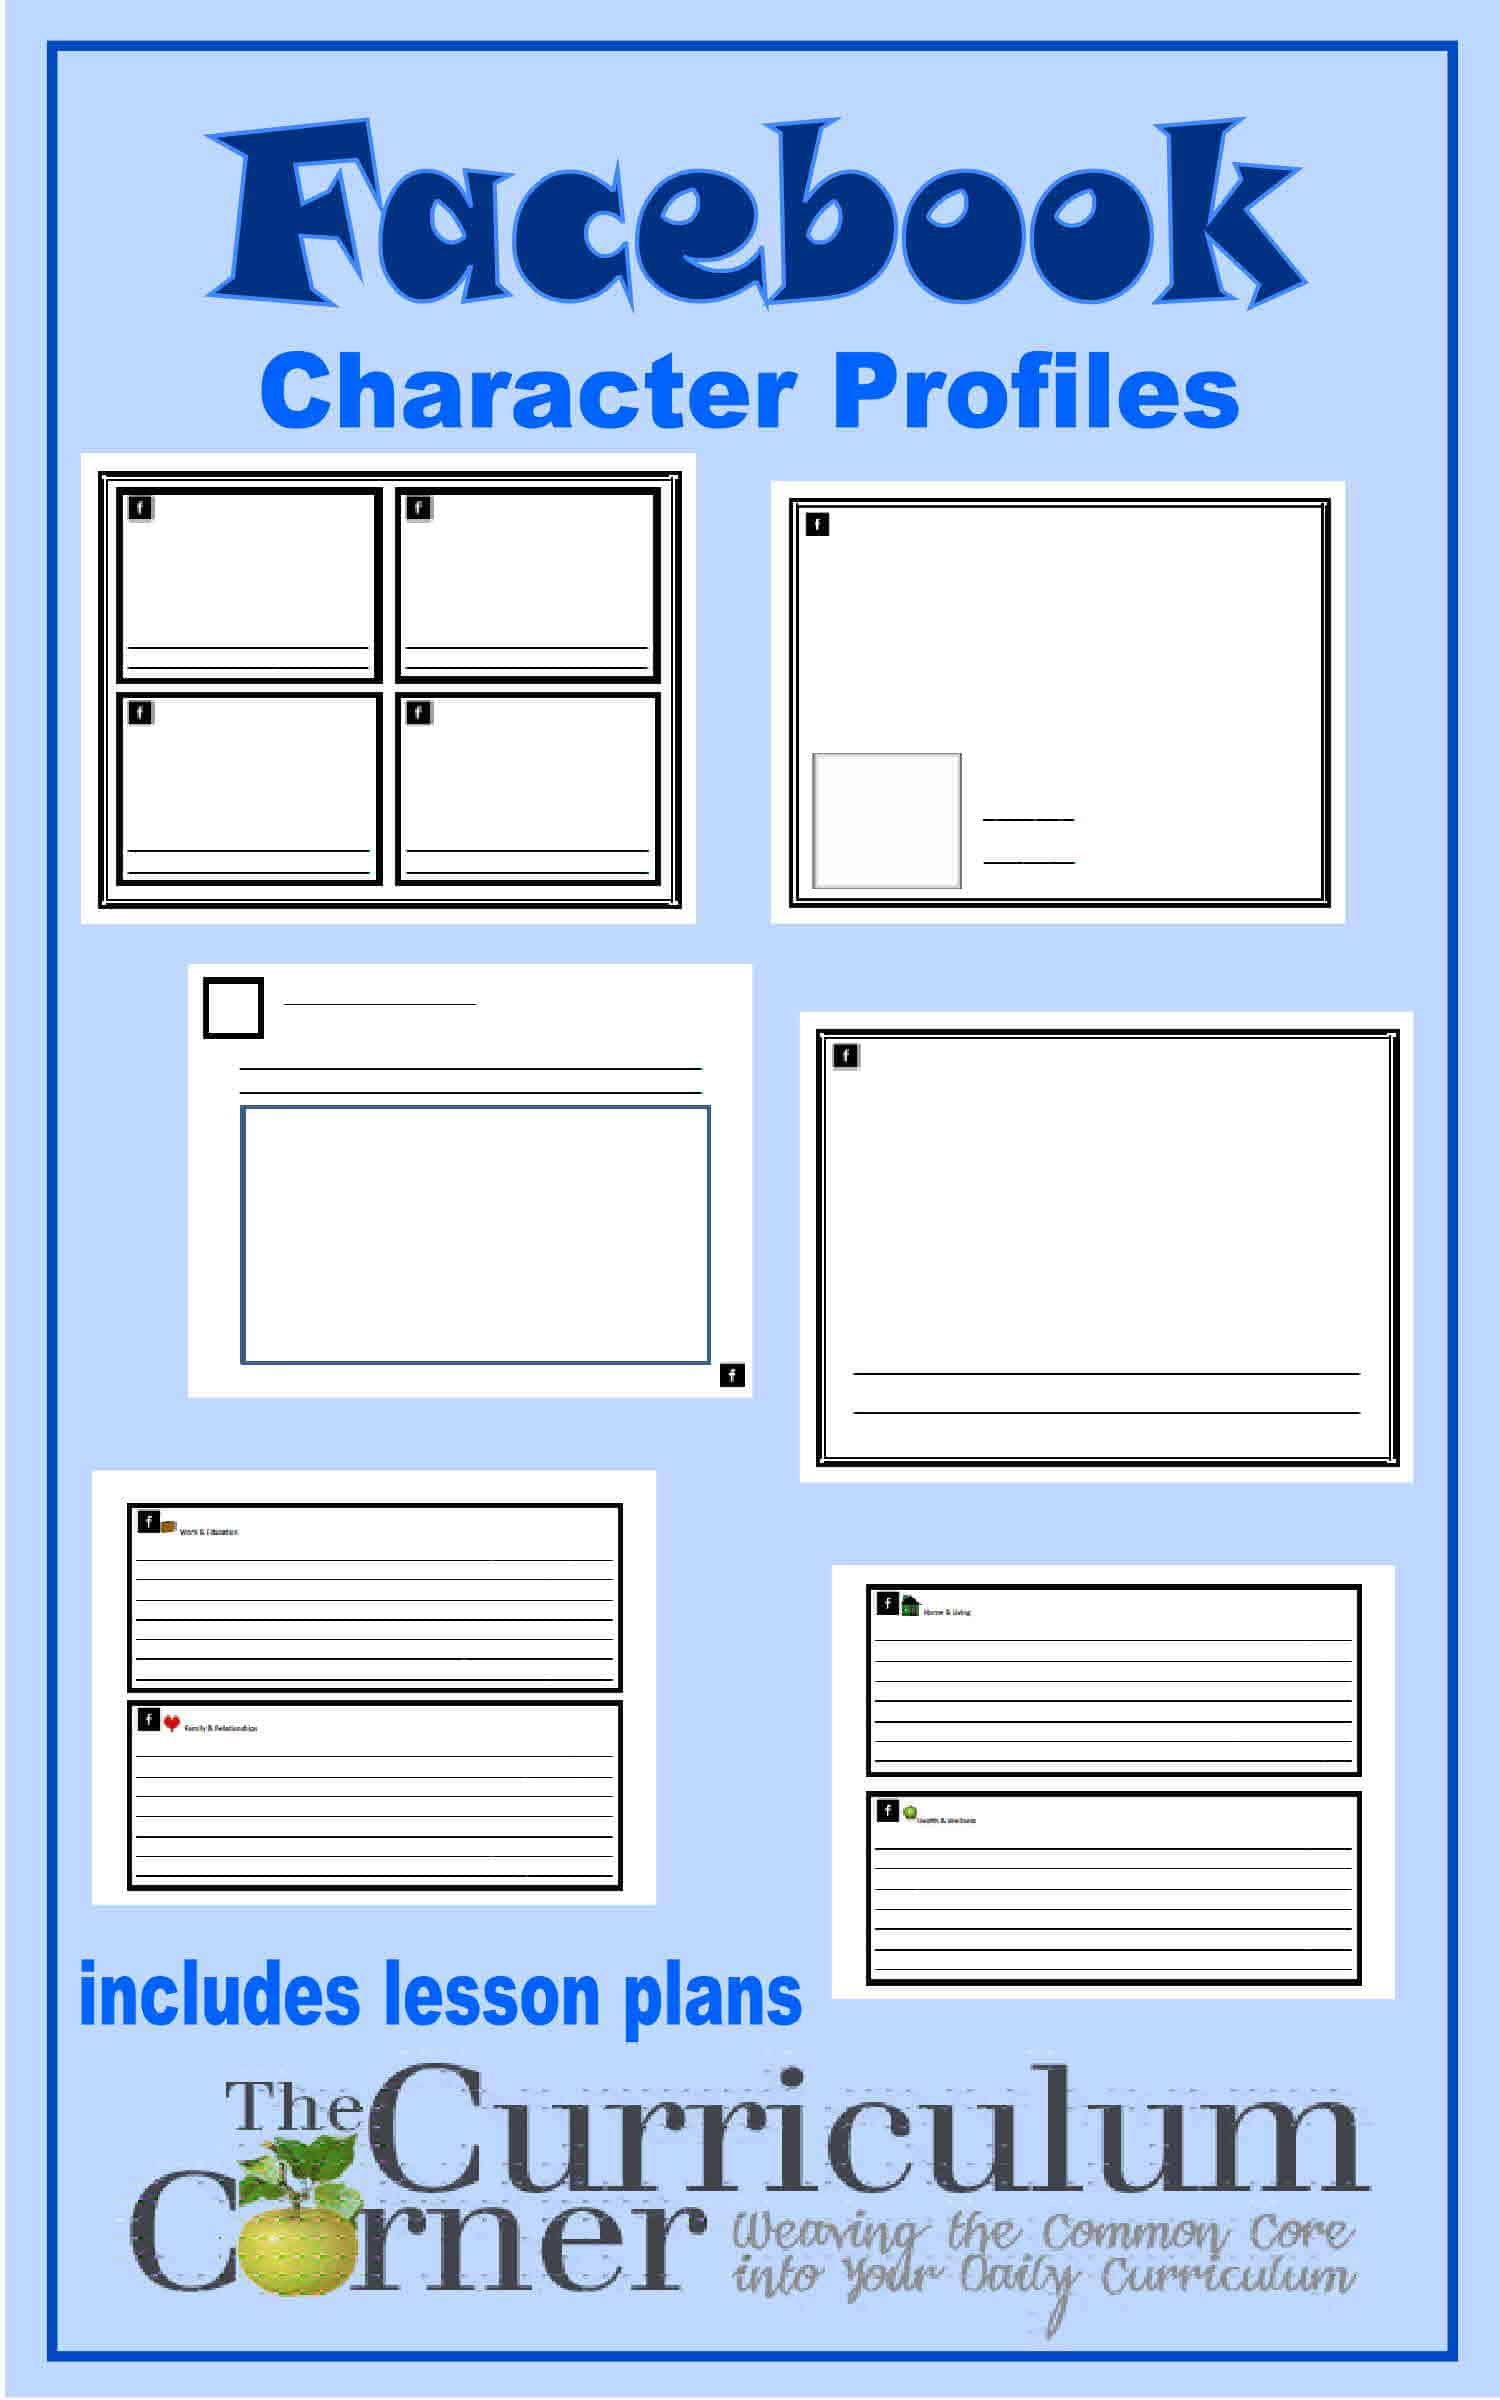 facebook lesson plan template - character facebook profile the curriculum corner 4 5 6